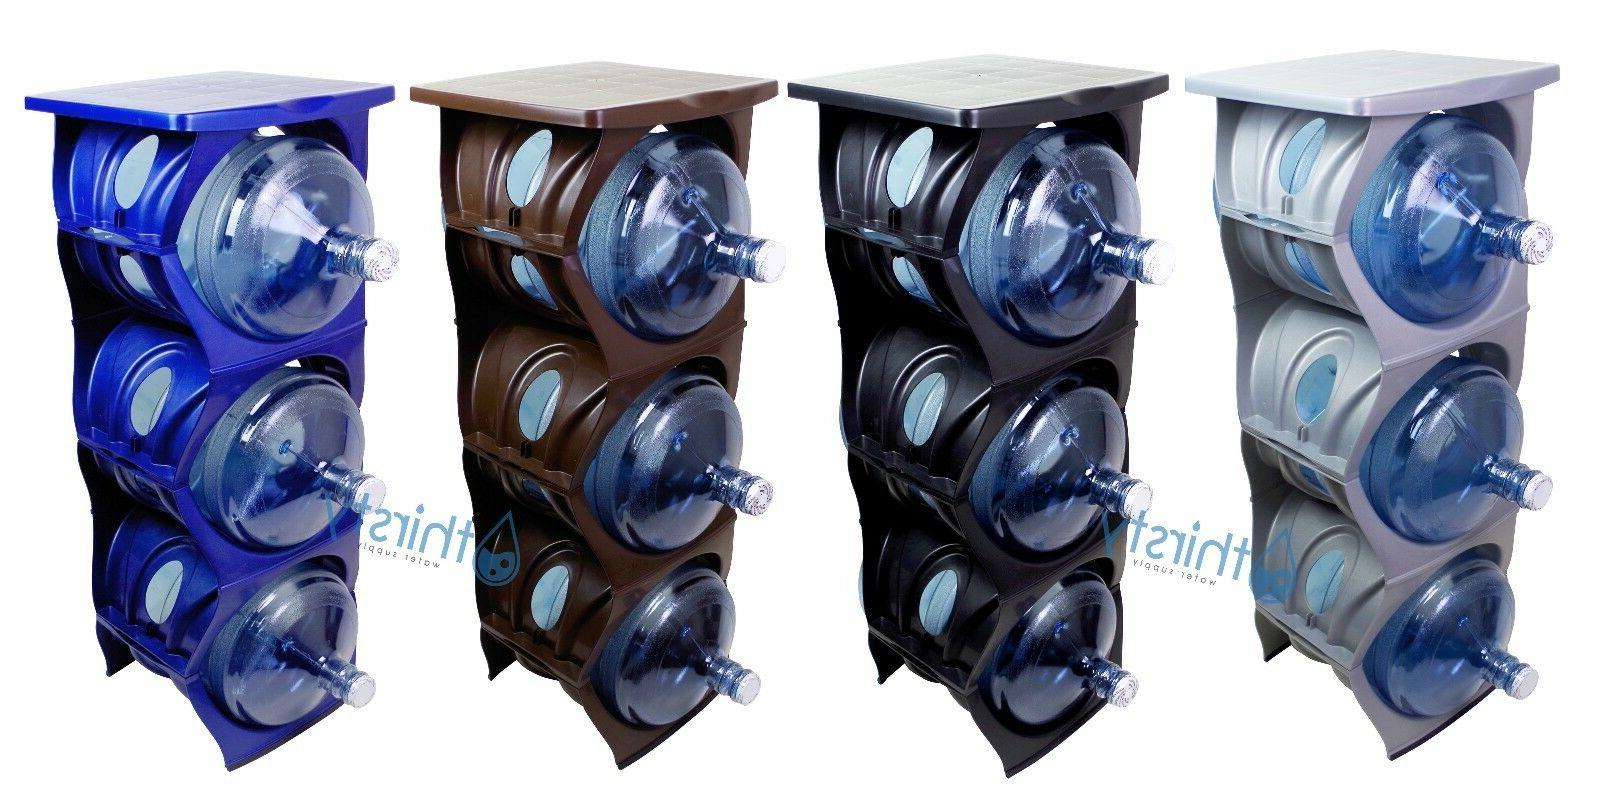 water bottle holder 3 and 5 gallon